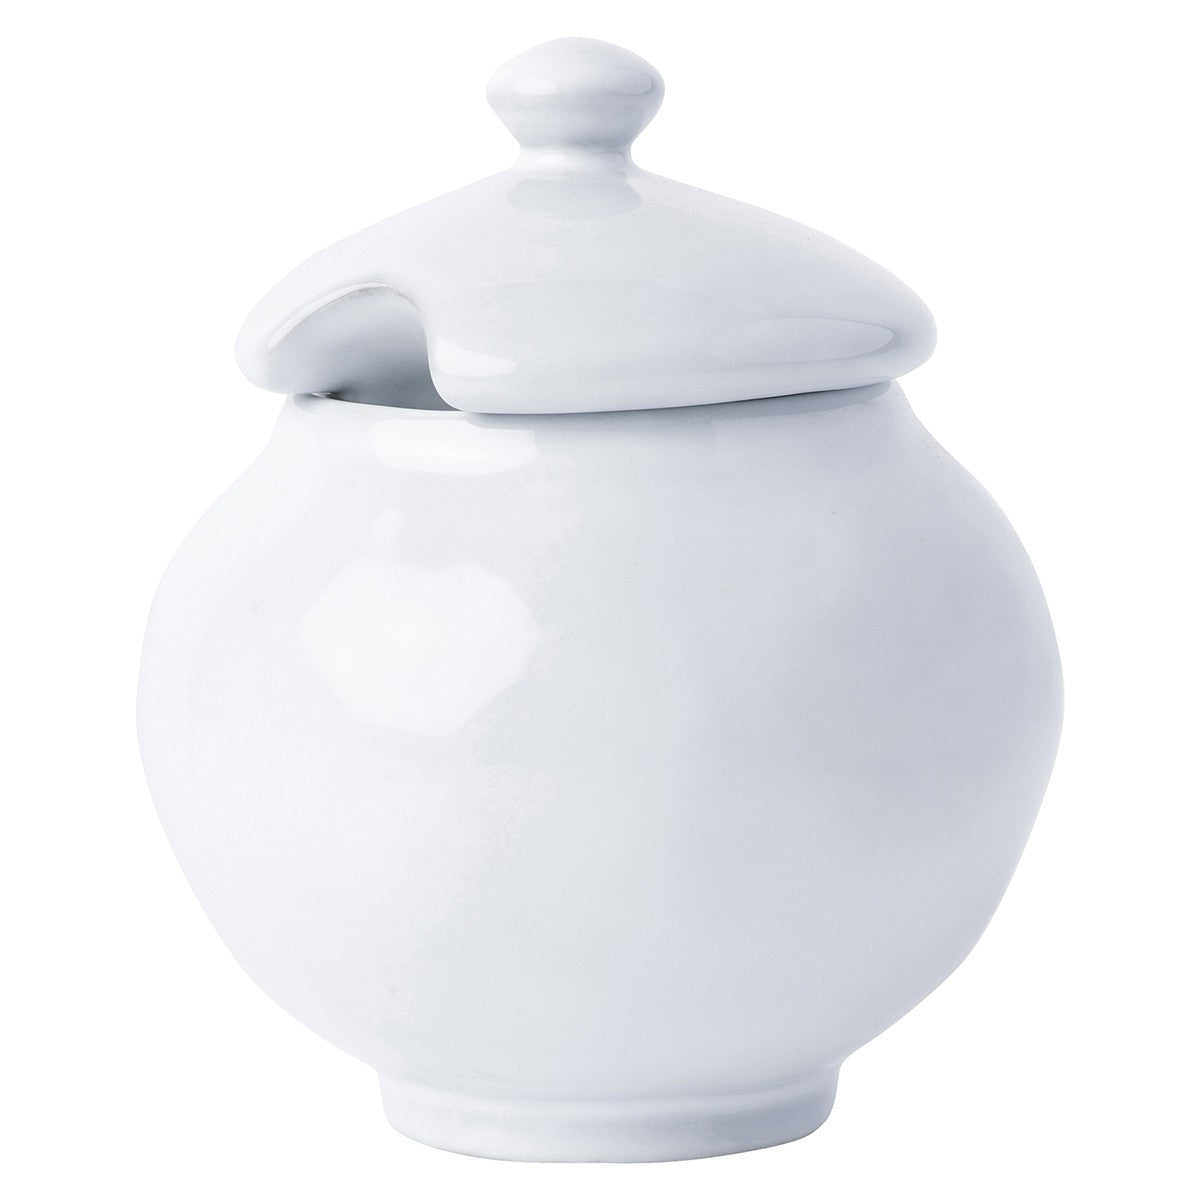 Quotidien White Truffle Lidded Sugar Bowl